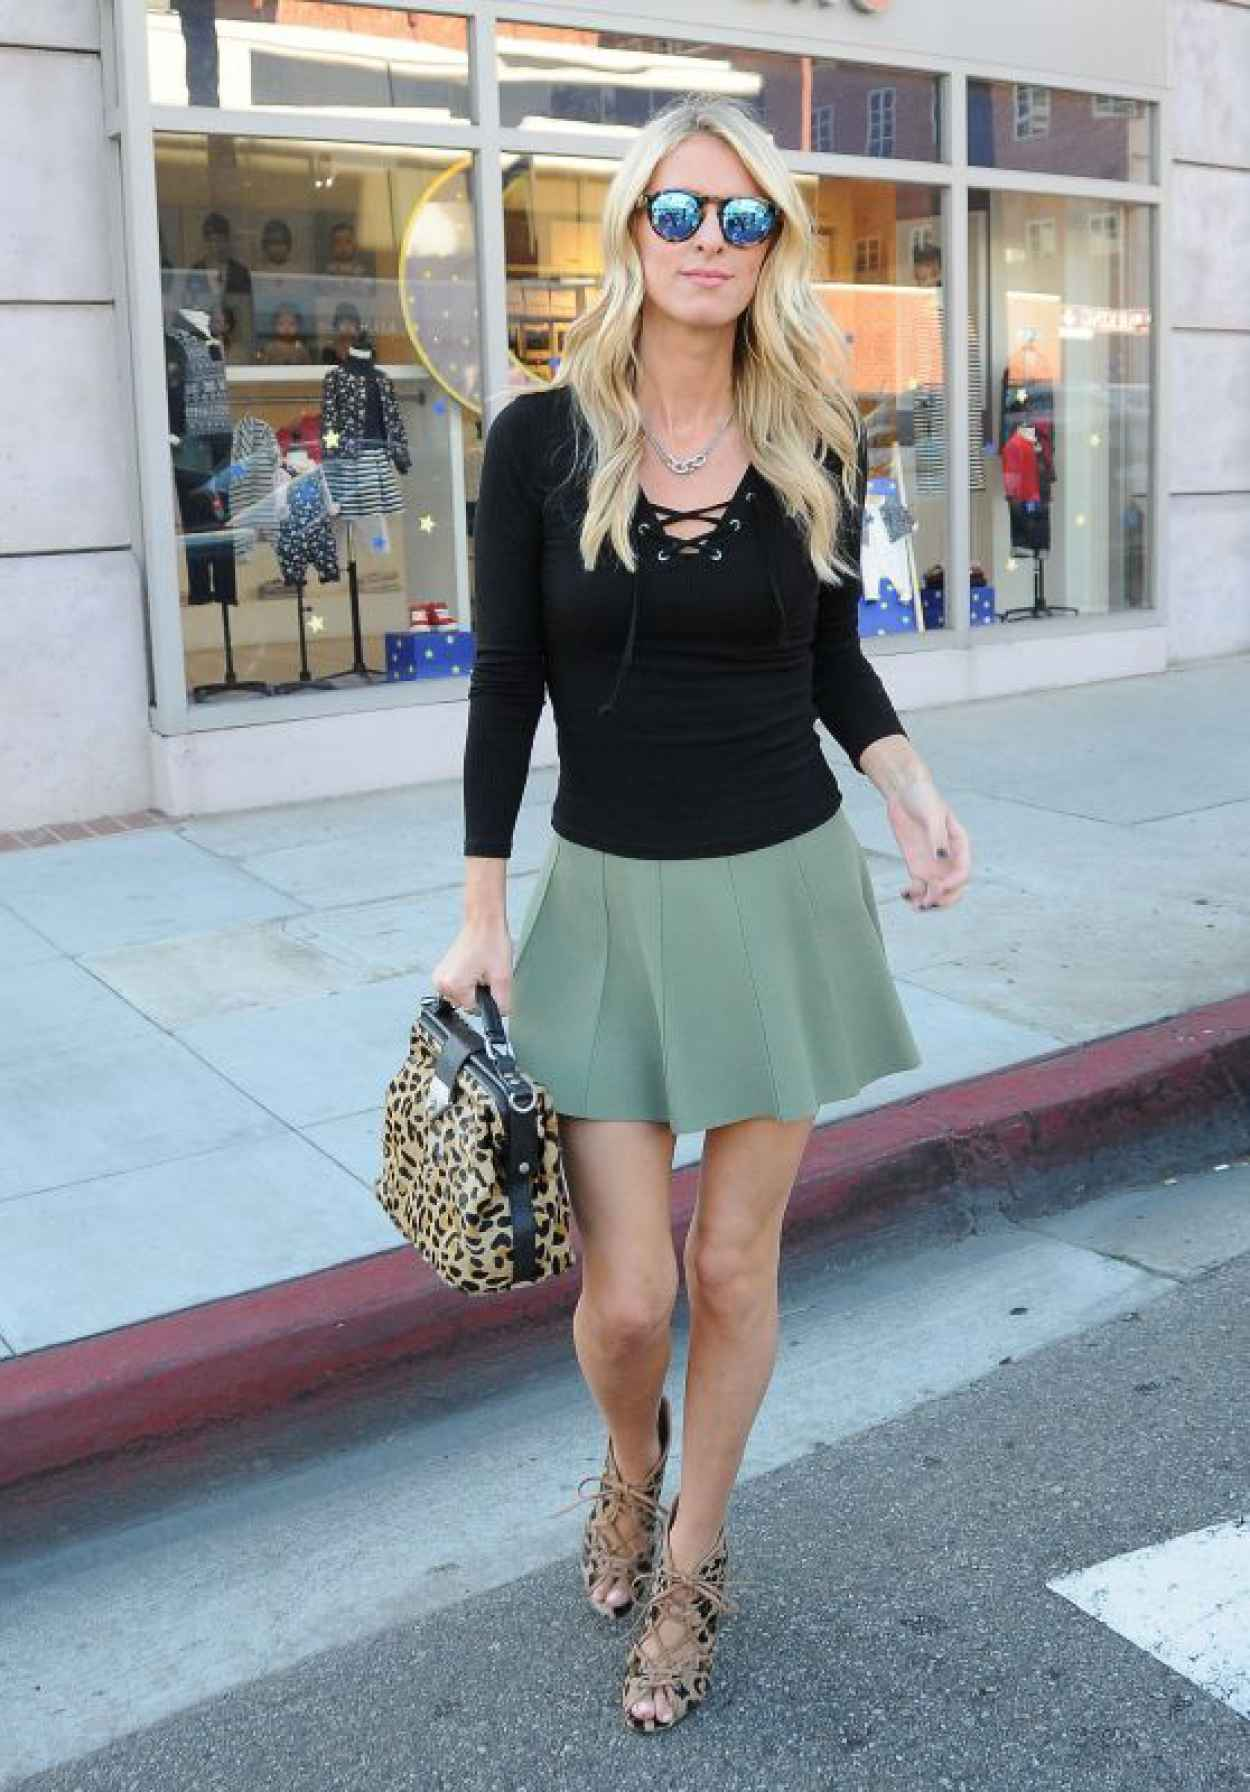 Nicky Hilton Rothschild in a Green Mini-Skirt in Beverly Hills - October 2015-1